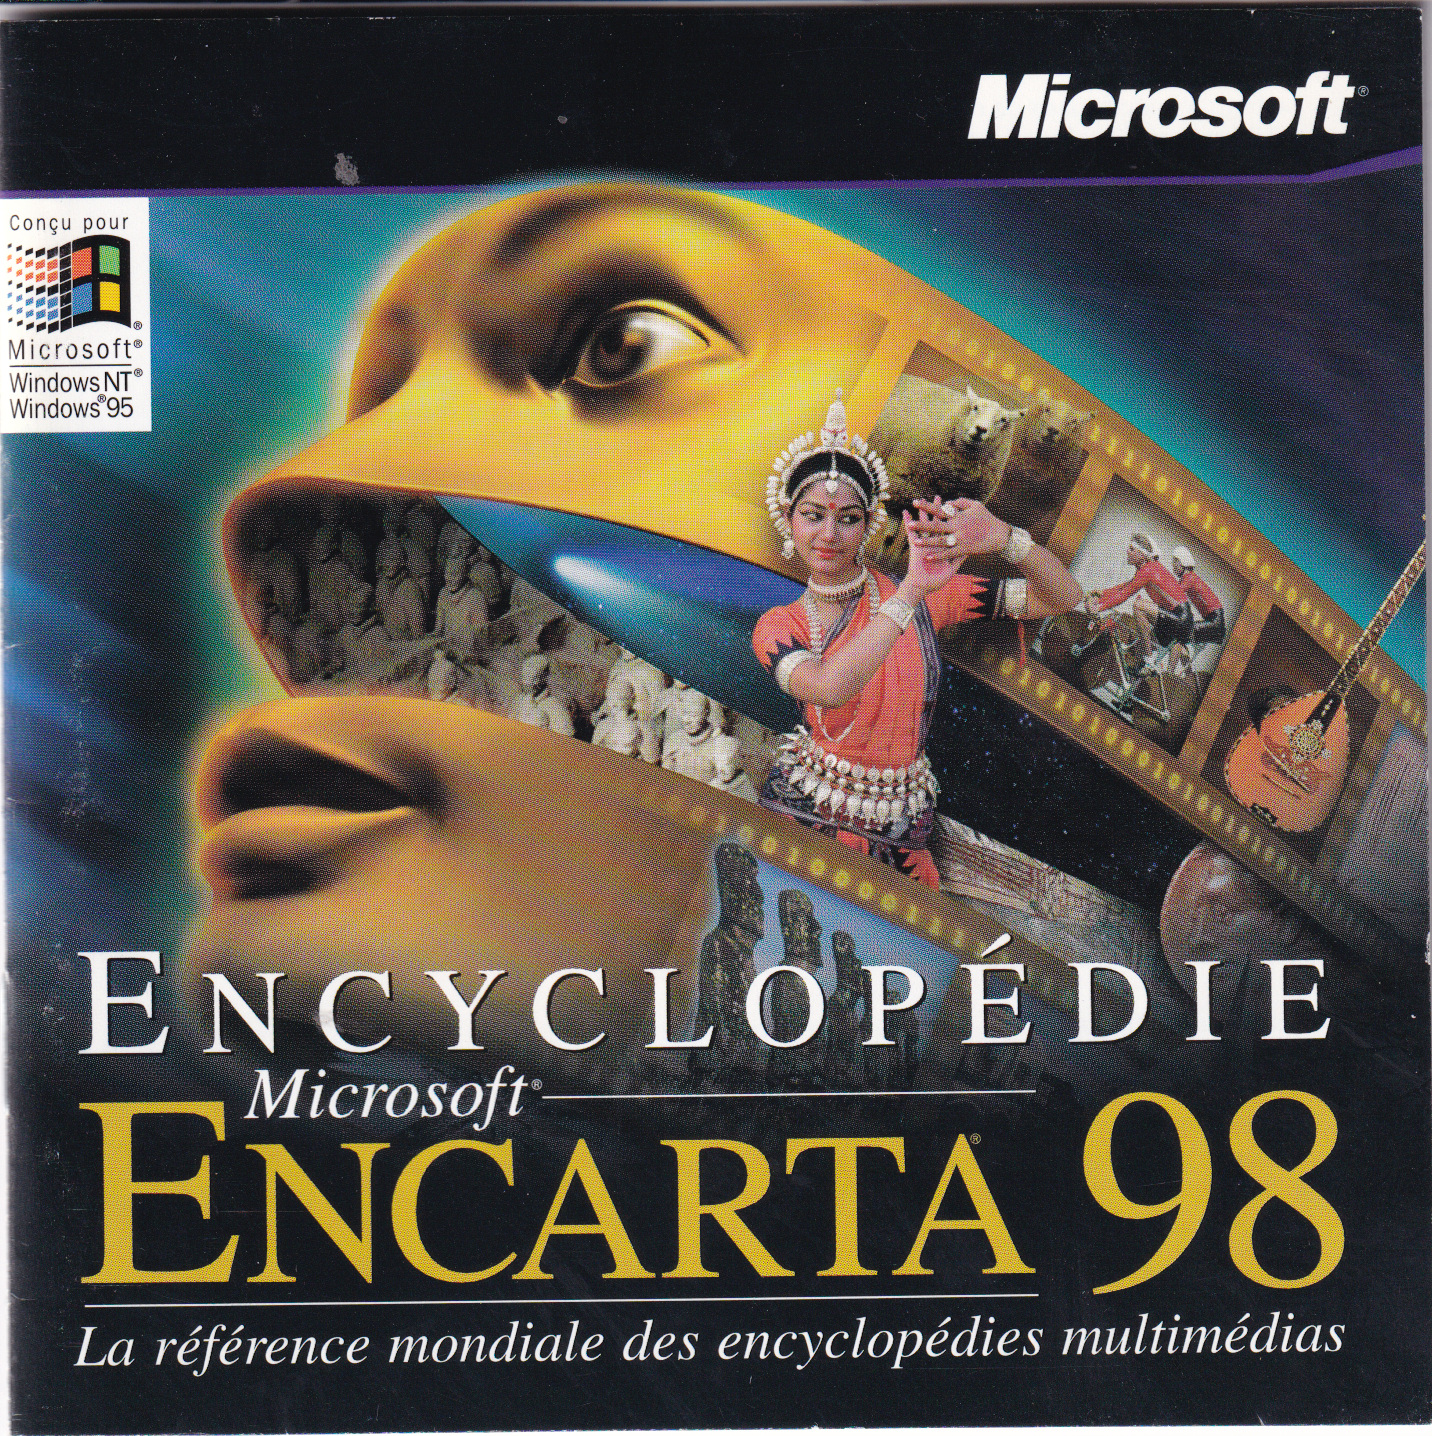 Microsoft Encyclopedie Encarta 98 French Version (Win95NT)(1997) : Free  Download, Borrow, and Streaming : Internet Archive